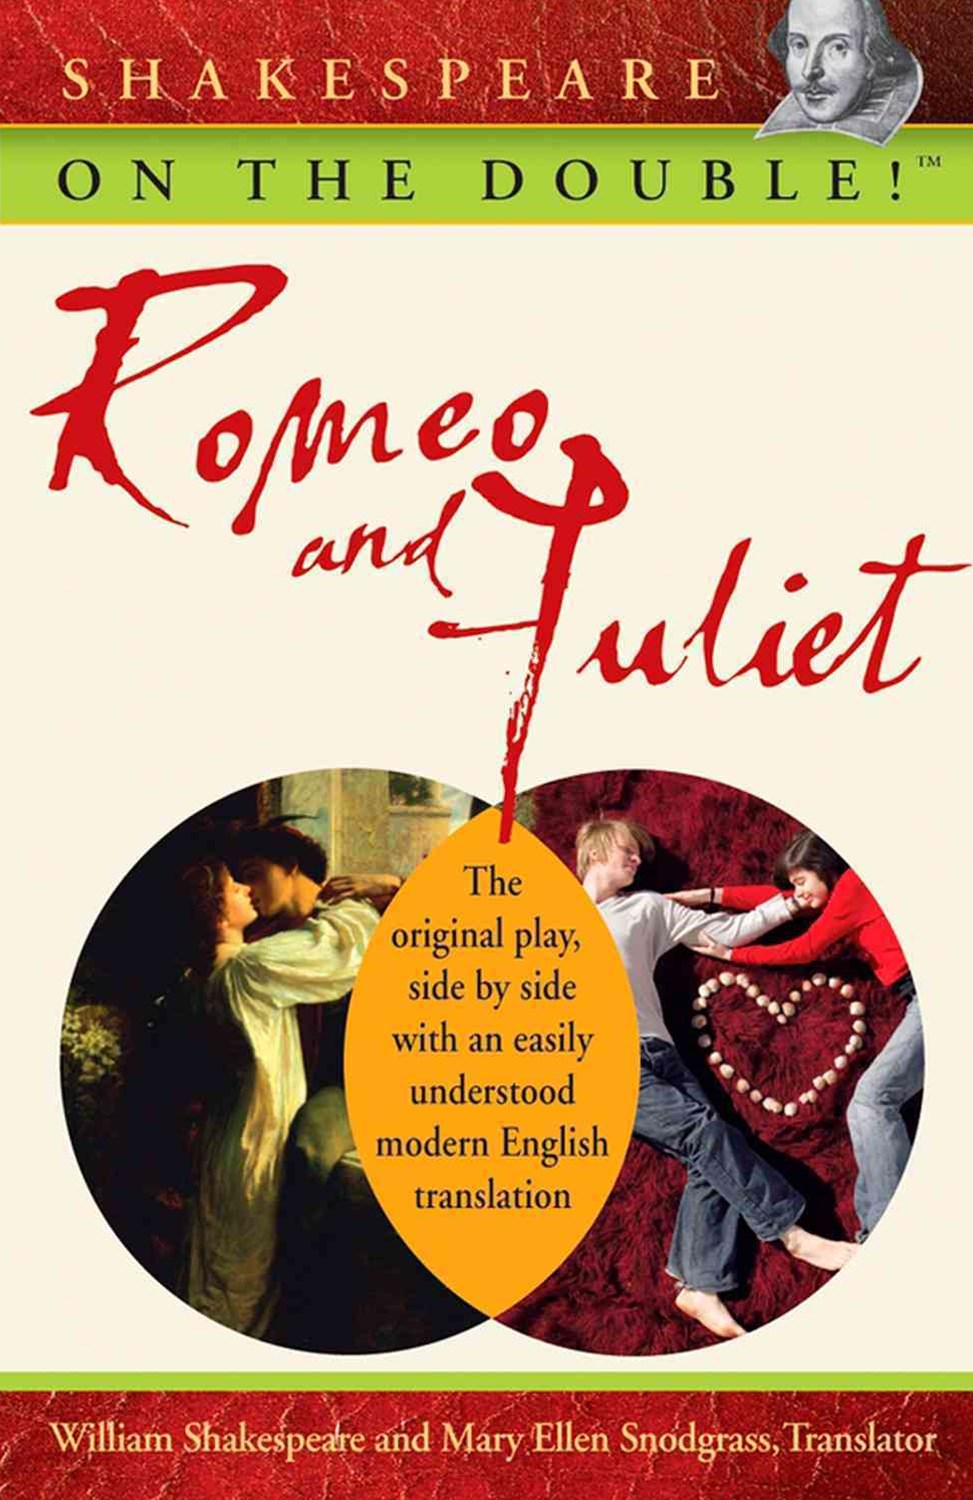 Shakespeare on the Double! Romeo and Juliet